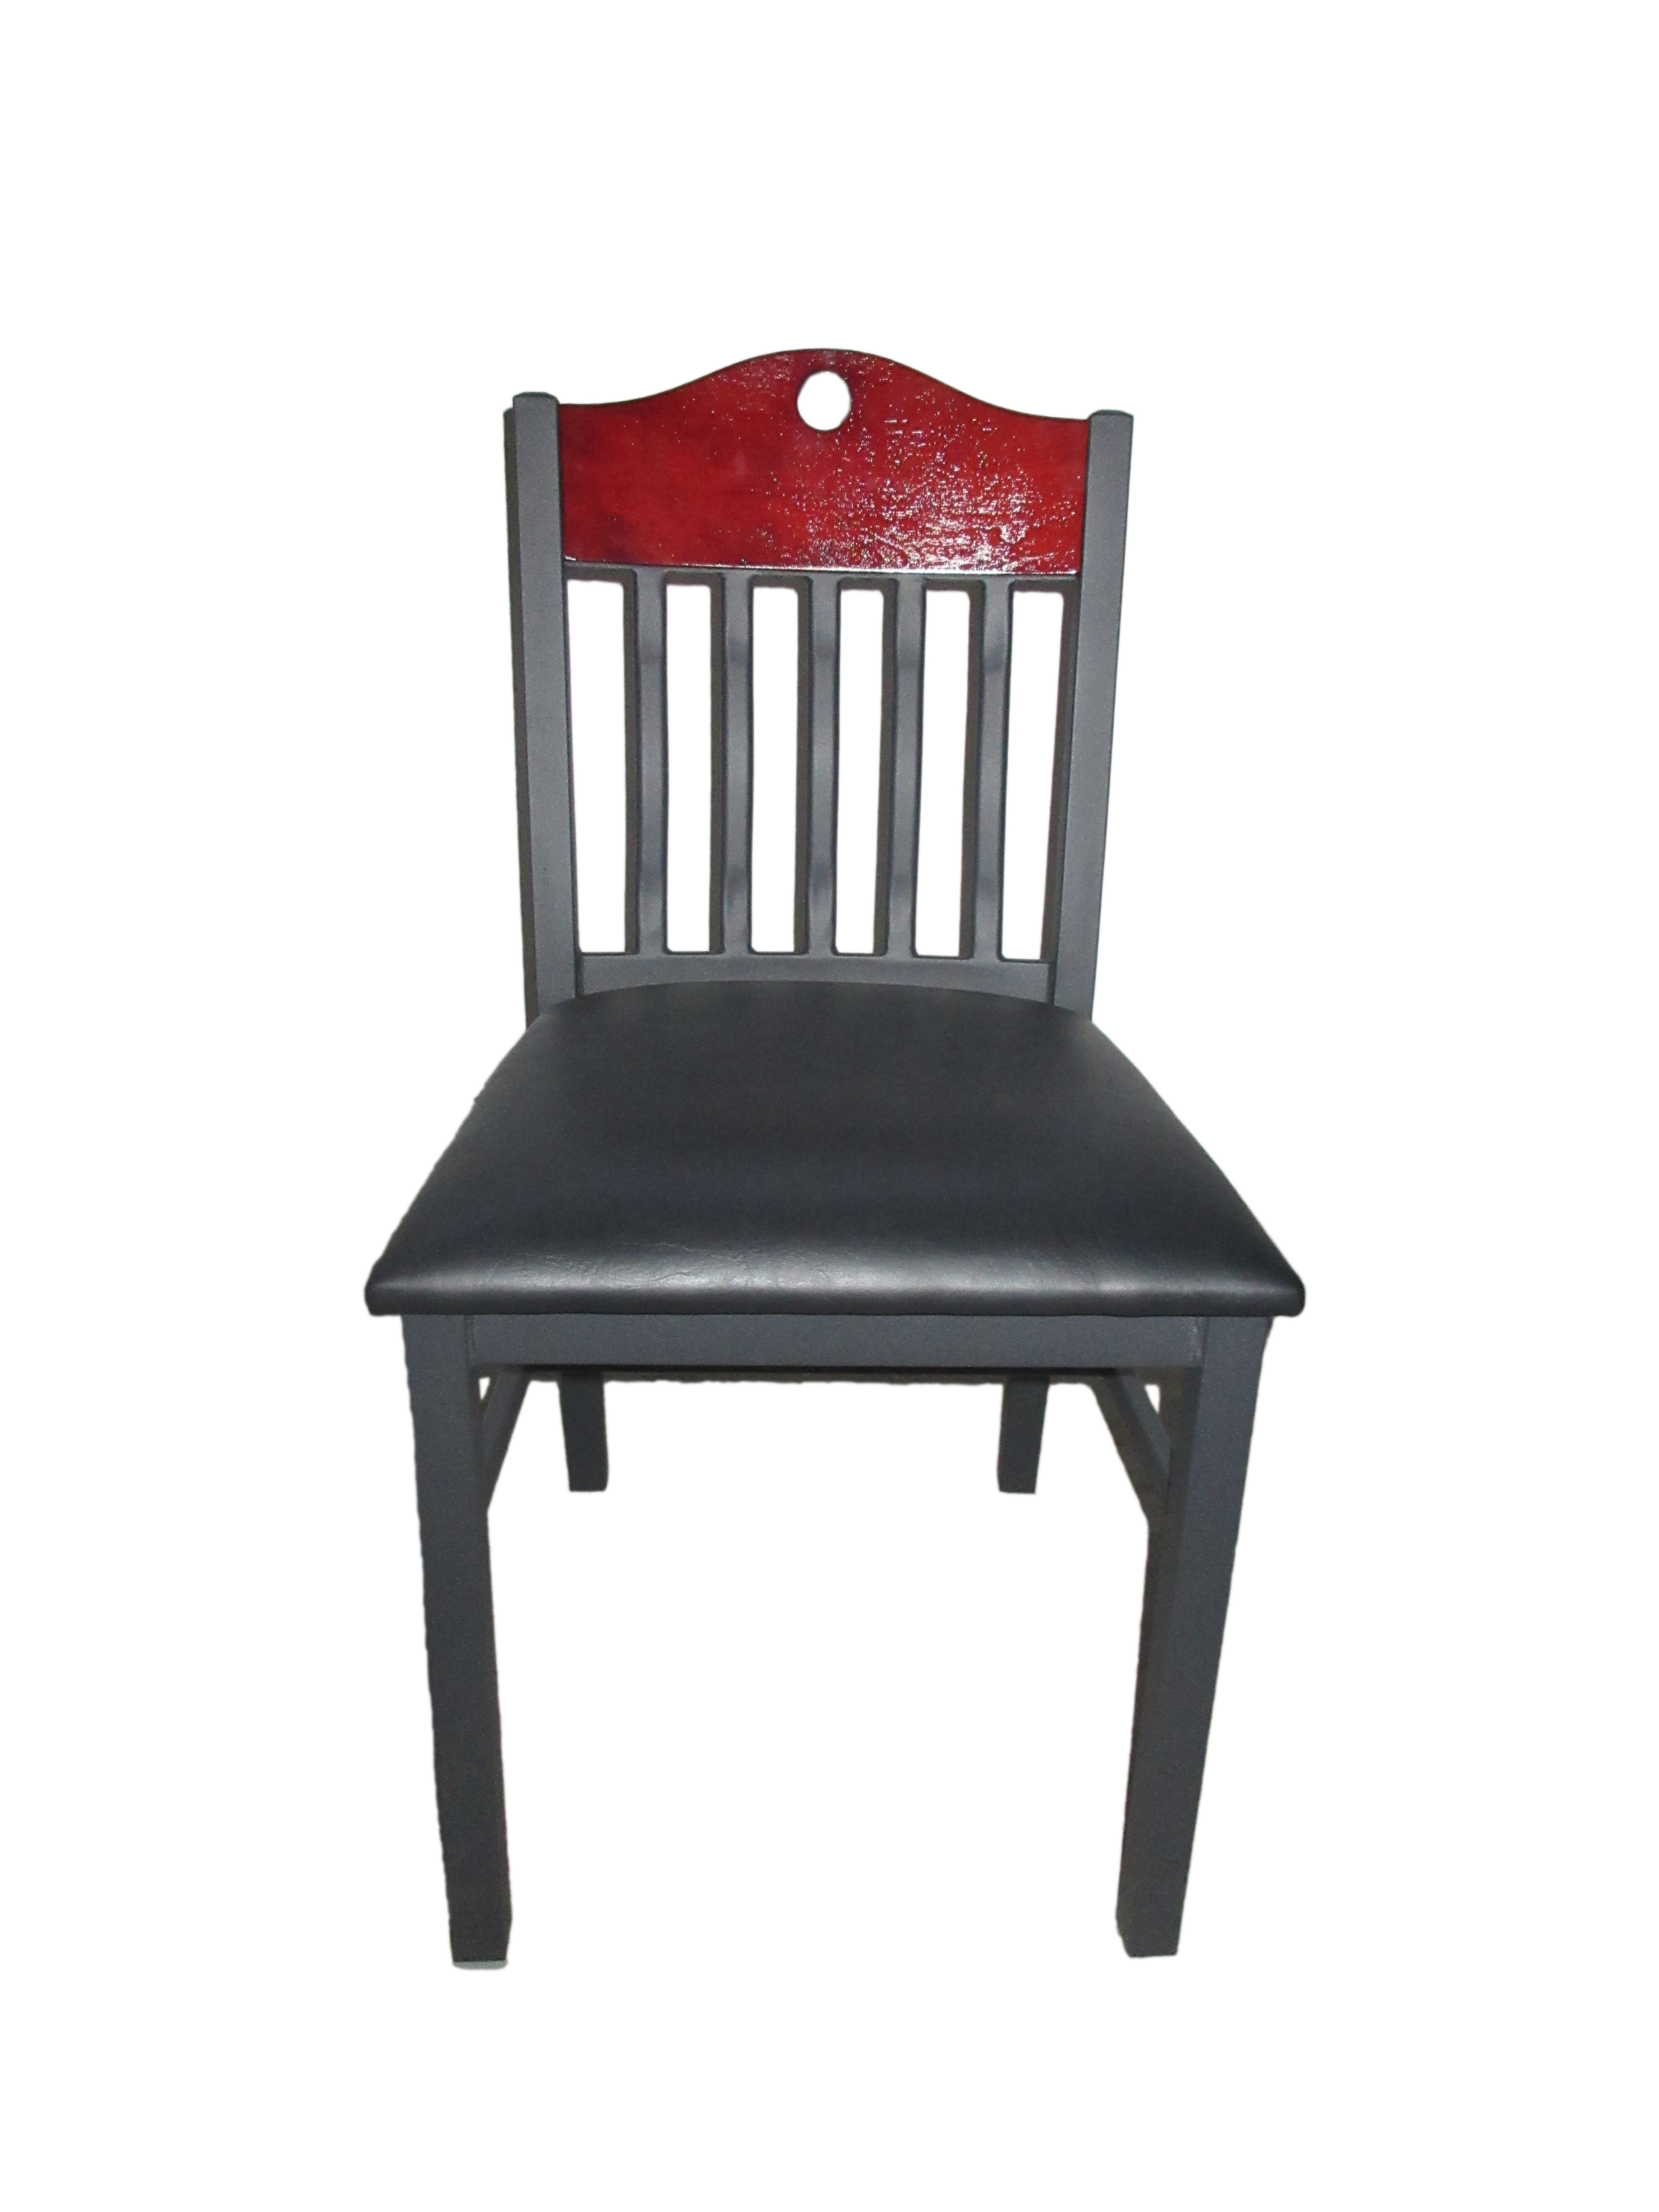 AAA Furniture Wholesale 320 GR4 chair, side, indoor